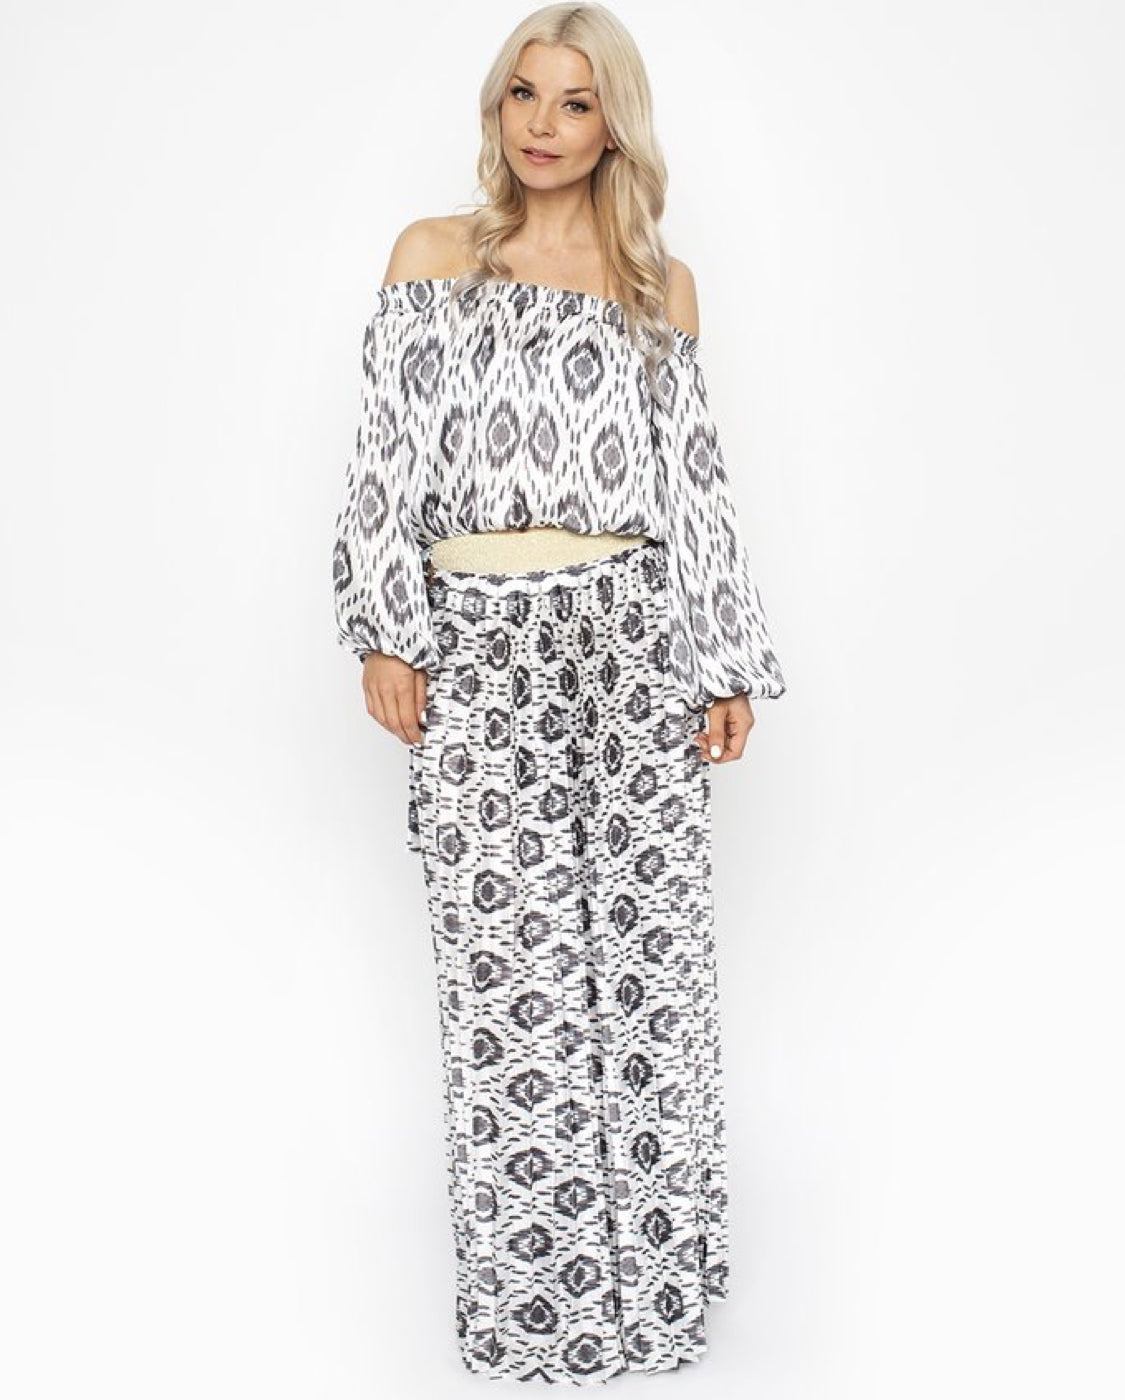 Dreamcatcher Pleated Maxi Skirt - Icat - by West Seventy Nine